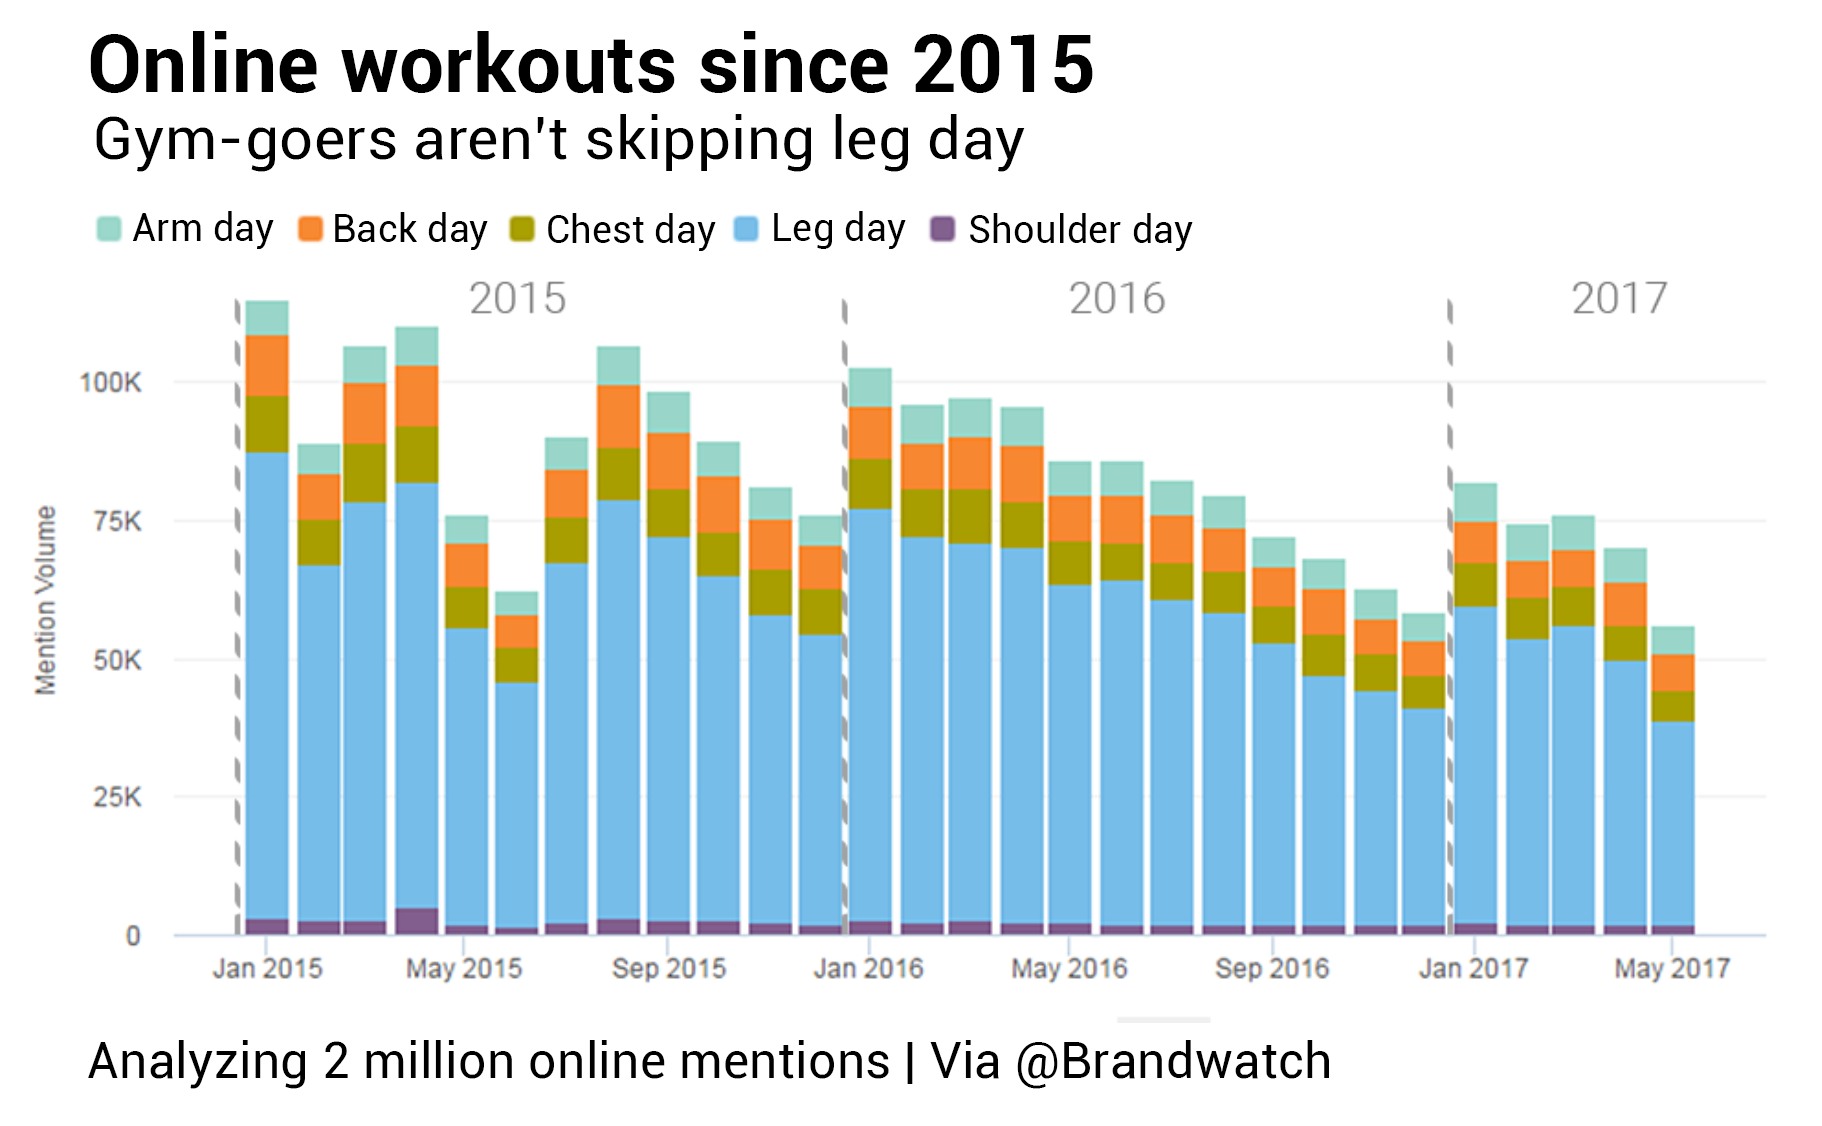 Bar chart showing mentions of different workout days, such as 'leg day' or 'arm day', covering the January 2015 to May 2017 period